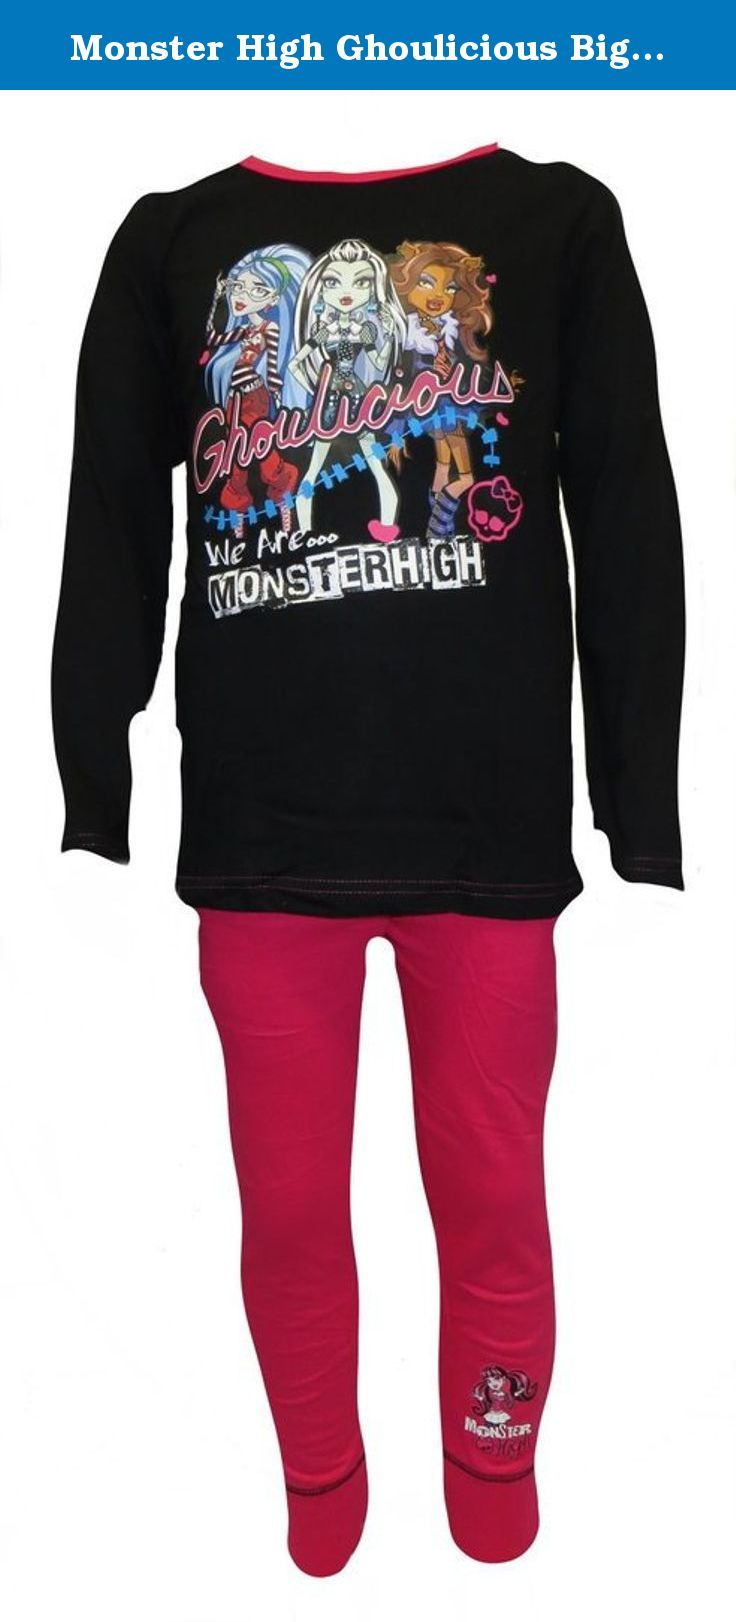 Monster High Ghoulicious Big Girl's Pyjamas 5-6 Years. Monster High Girl's pyjamas with a black long sleeved top and pink long leg pants. These pyjamas are made from 100% cotton. Available in ages: 5-6 (116cm), 7-8, (128cm) and 9-10 (140cm), 11-12 Years (152cm).